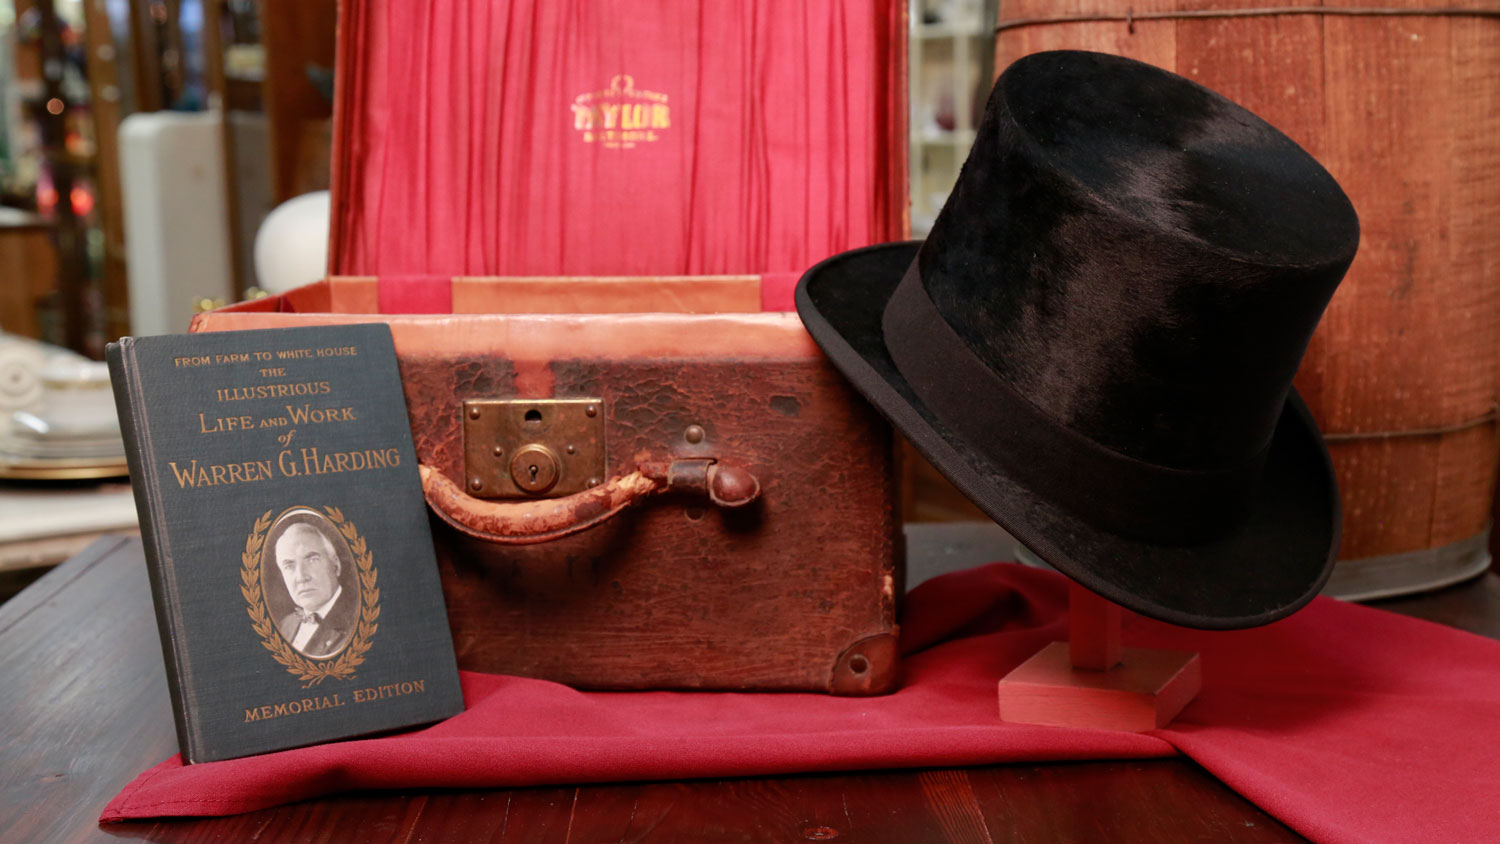 Black beaver top hat and hat box with initials WGH and a book  titled, From Farm to White House.  The Illustrious Life and Work of Warren G. Harding are shown.